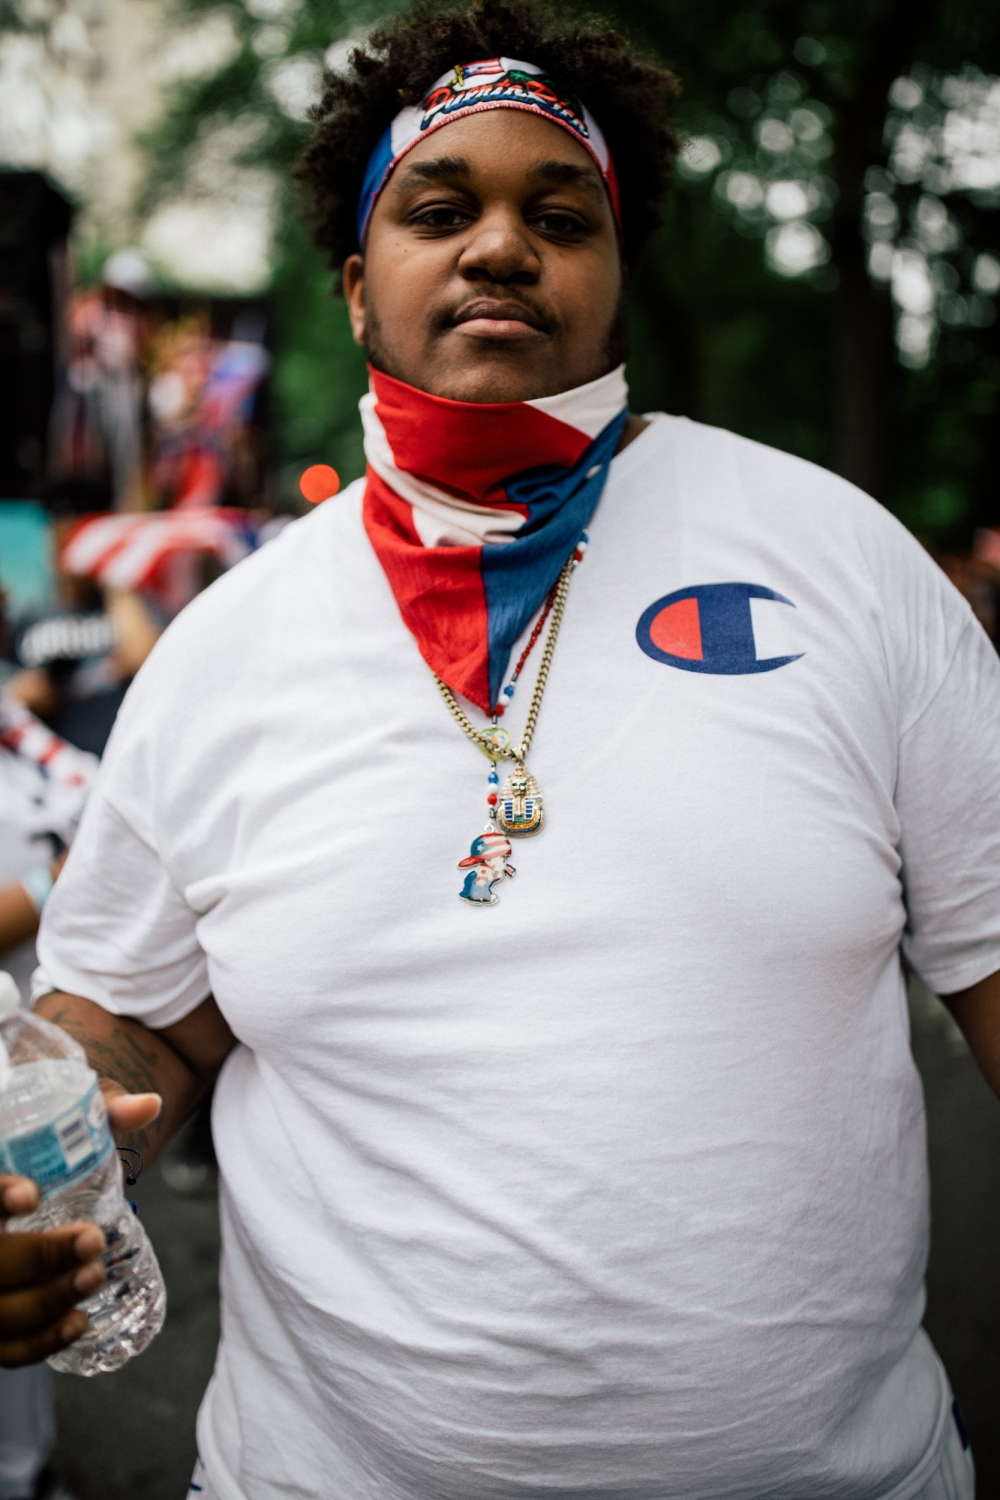 A marcher wearing a Puerto Rican flag bandana and sporting Puerto Rican–themed necklaces, at Fifth Avenue and 76th Street